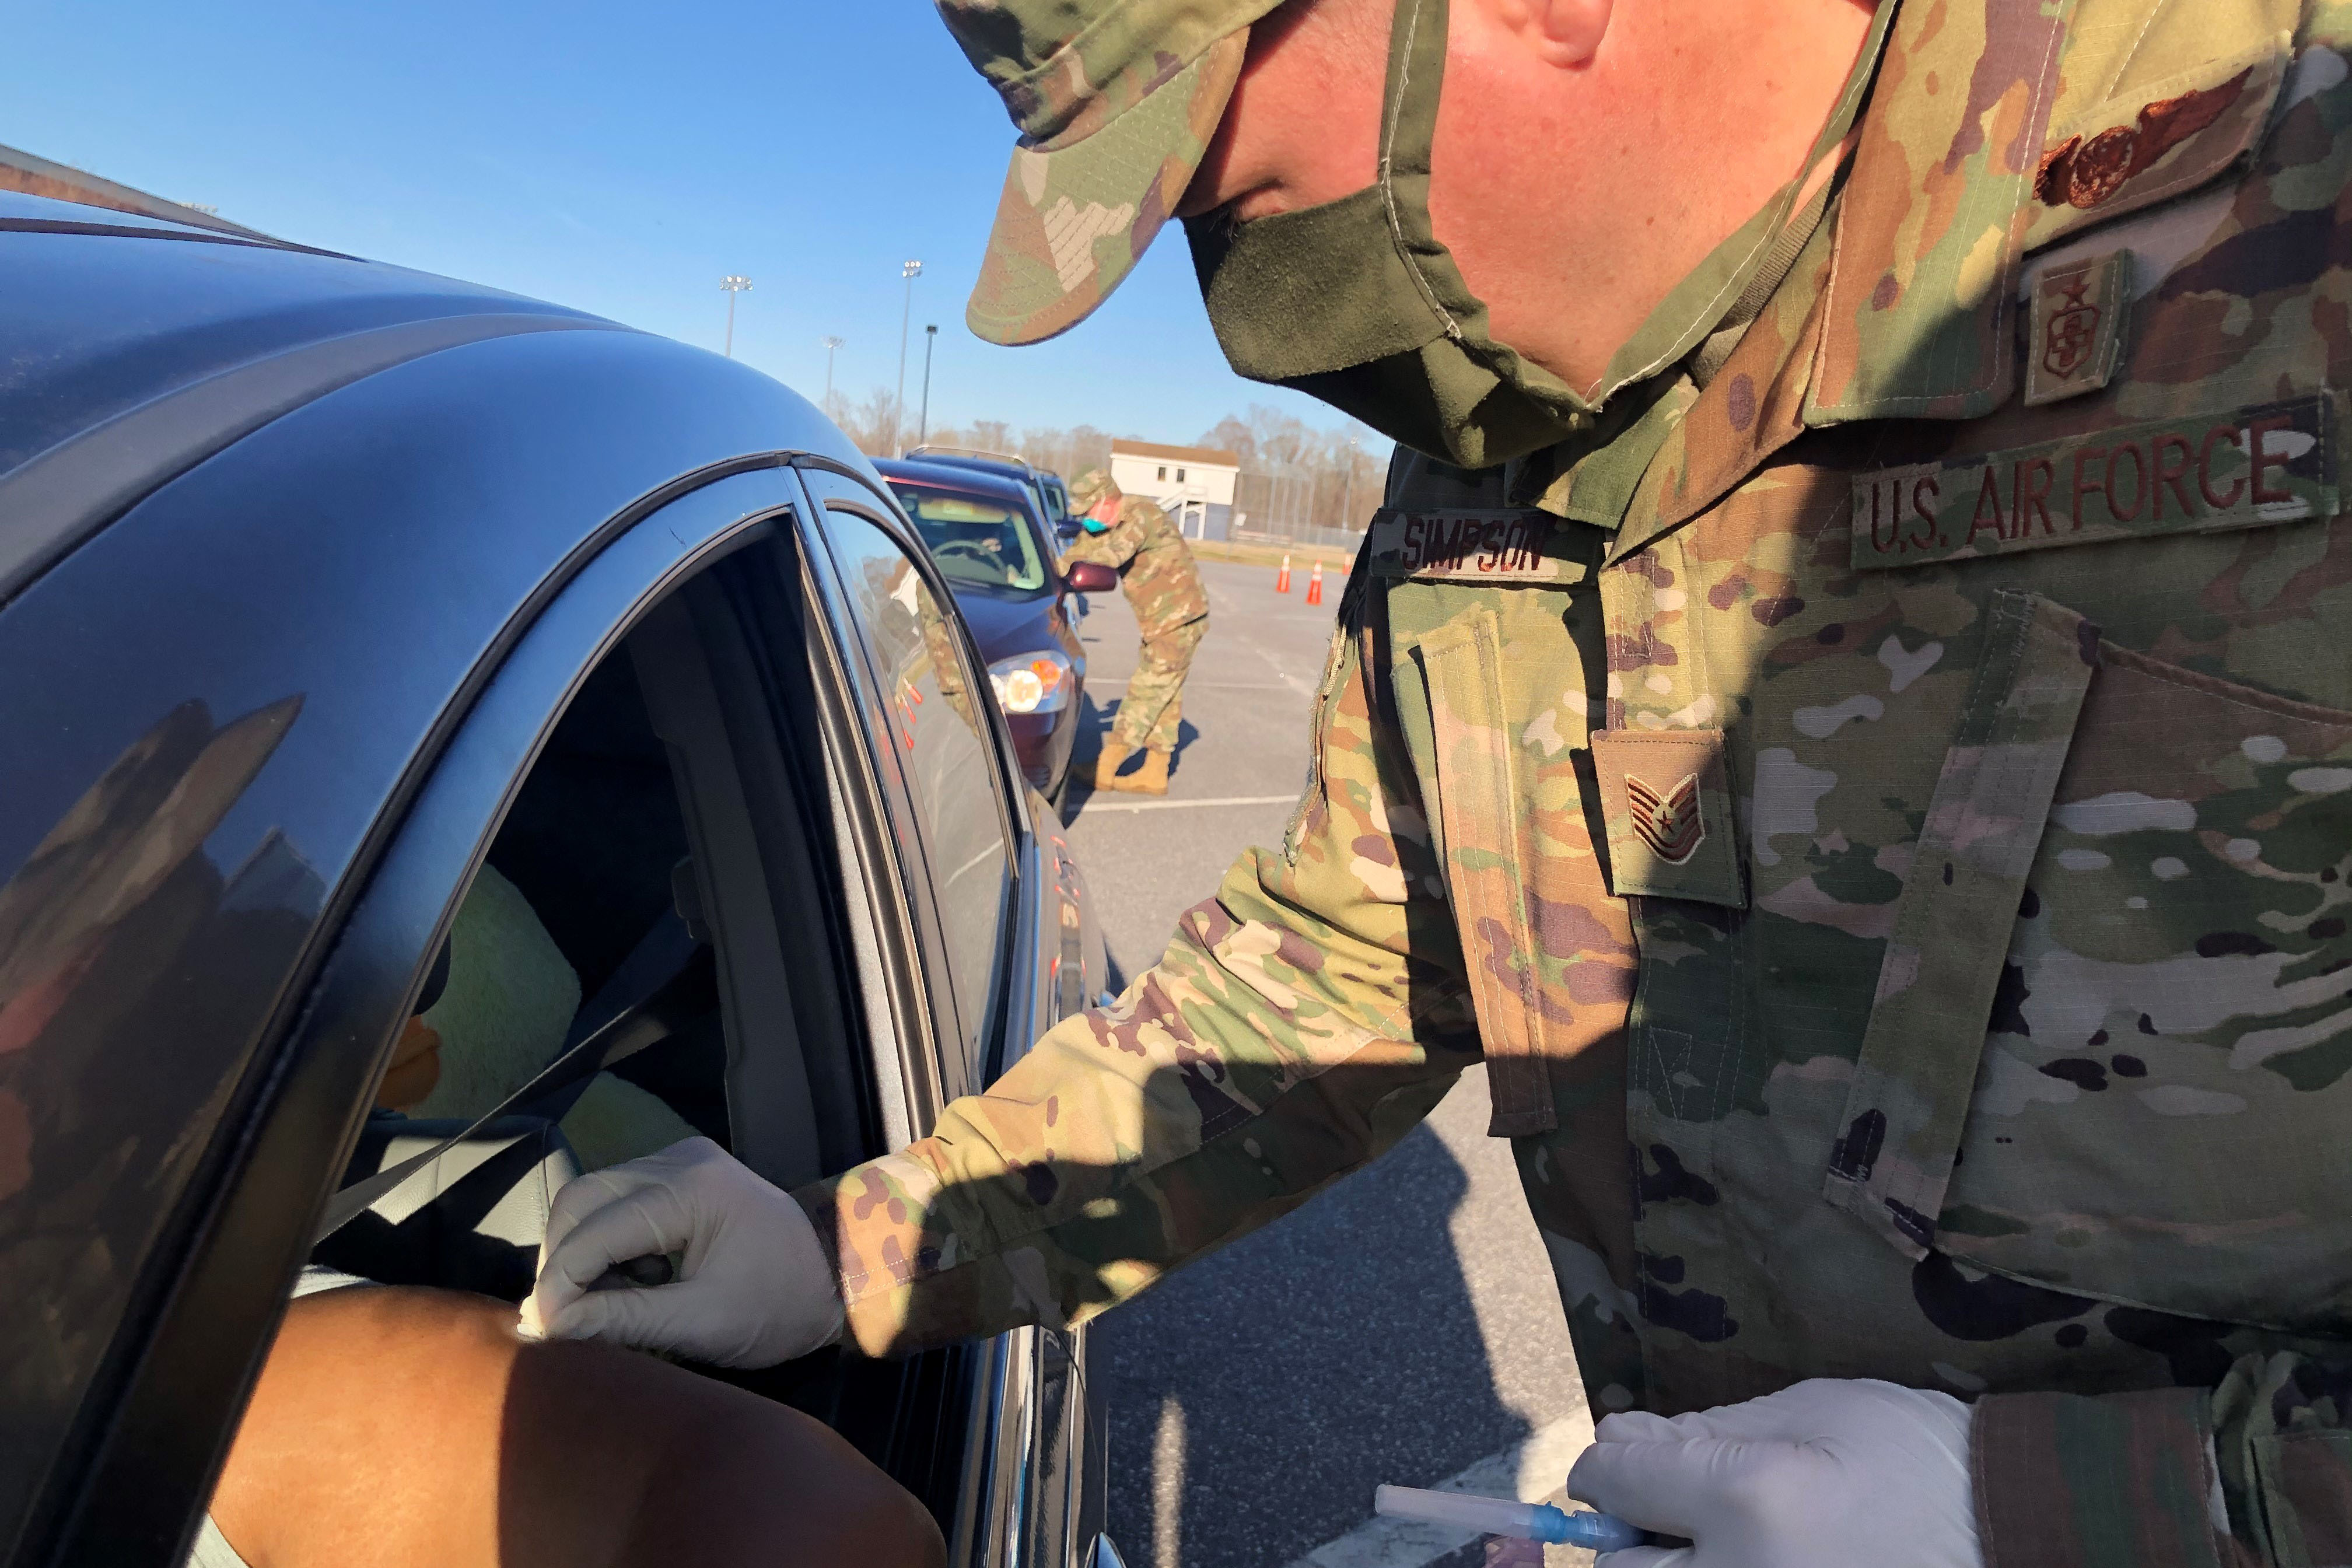 Caption: At a drive-through vaccination site in Elizabeth City, N.C., Tech Sgt. Steven Simpson of the North Carolina National Guard administers a COVID-19 vaccination as Maj. Hollis Guenther gives the next recipient instructions about the vaccine., Credit: Jay Price / American Homefront